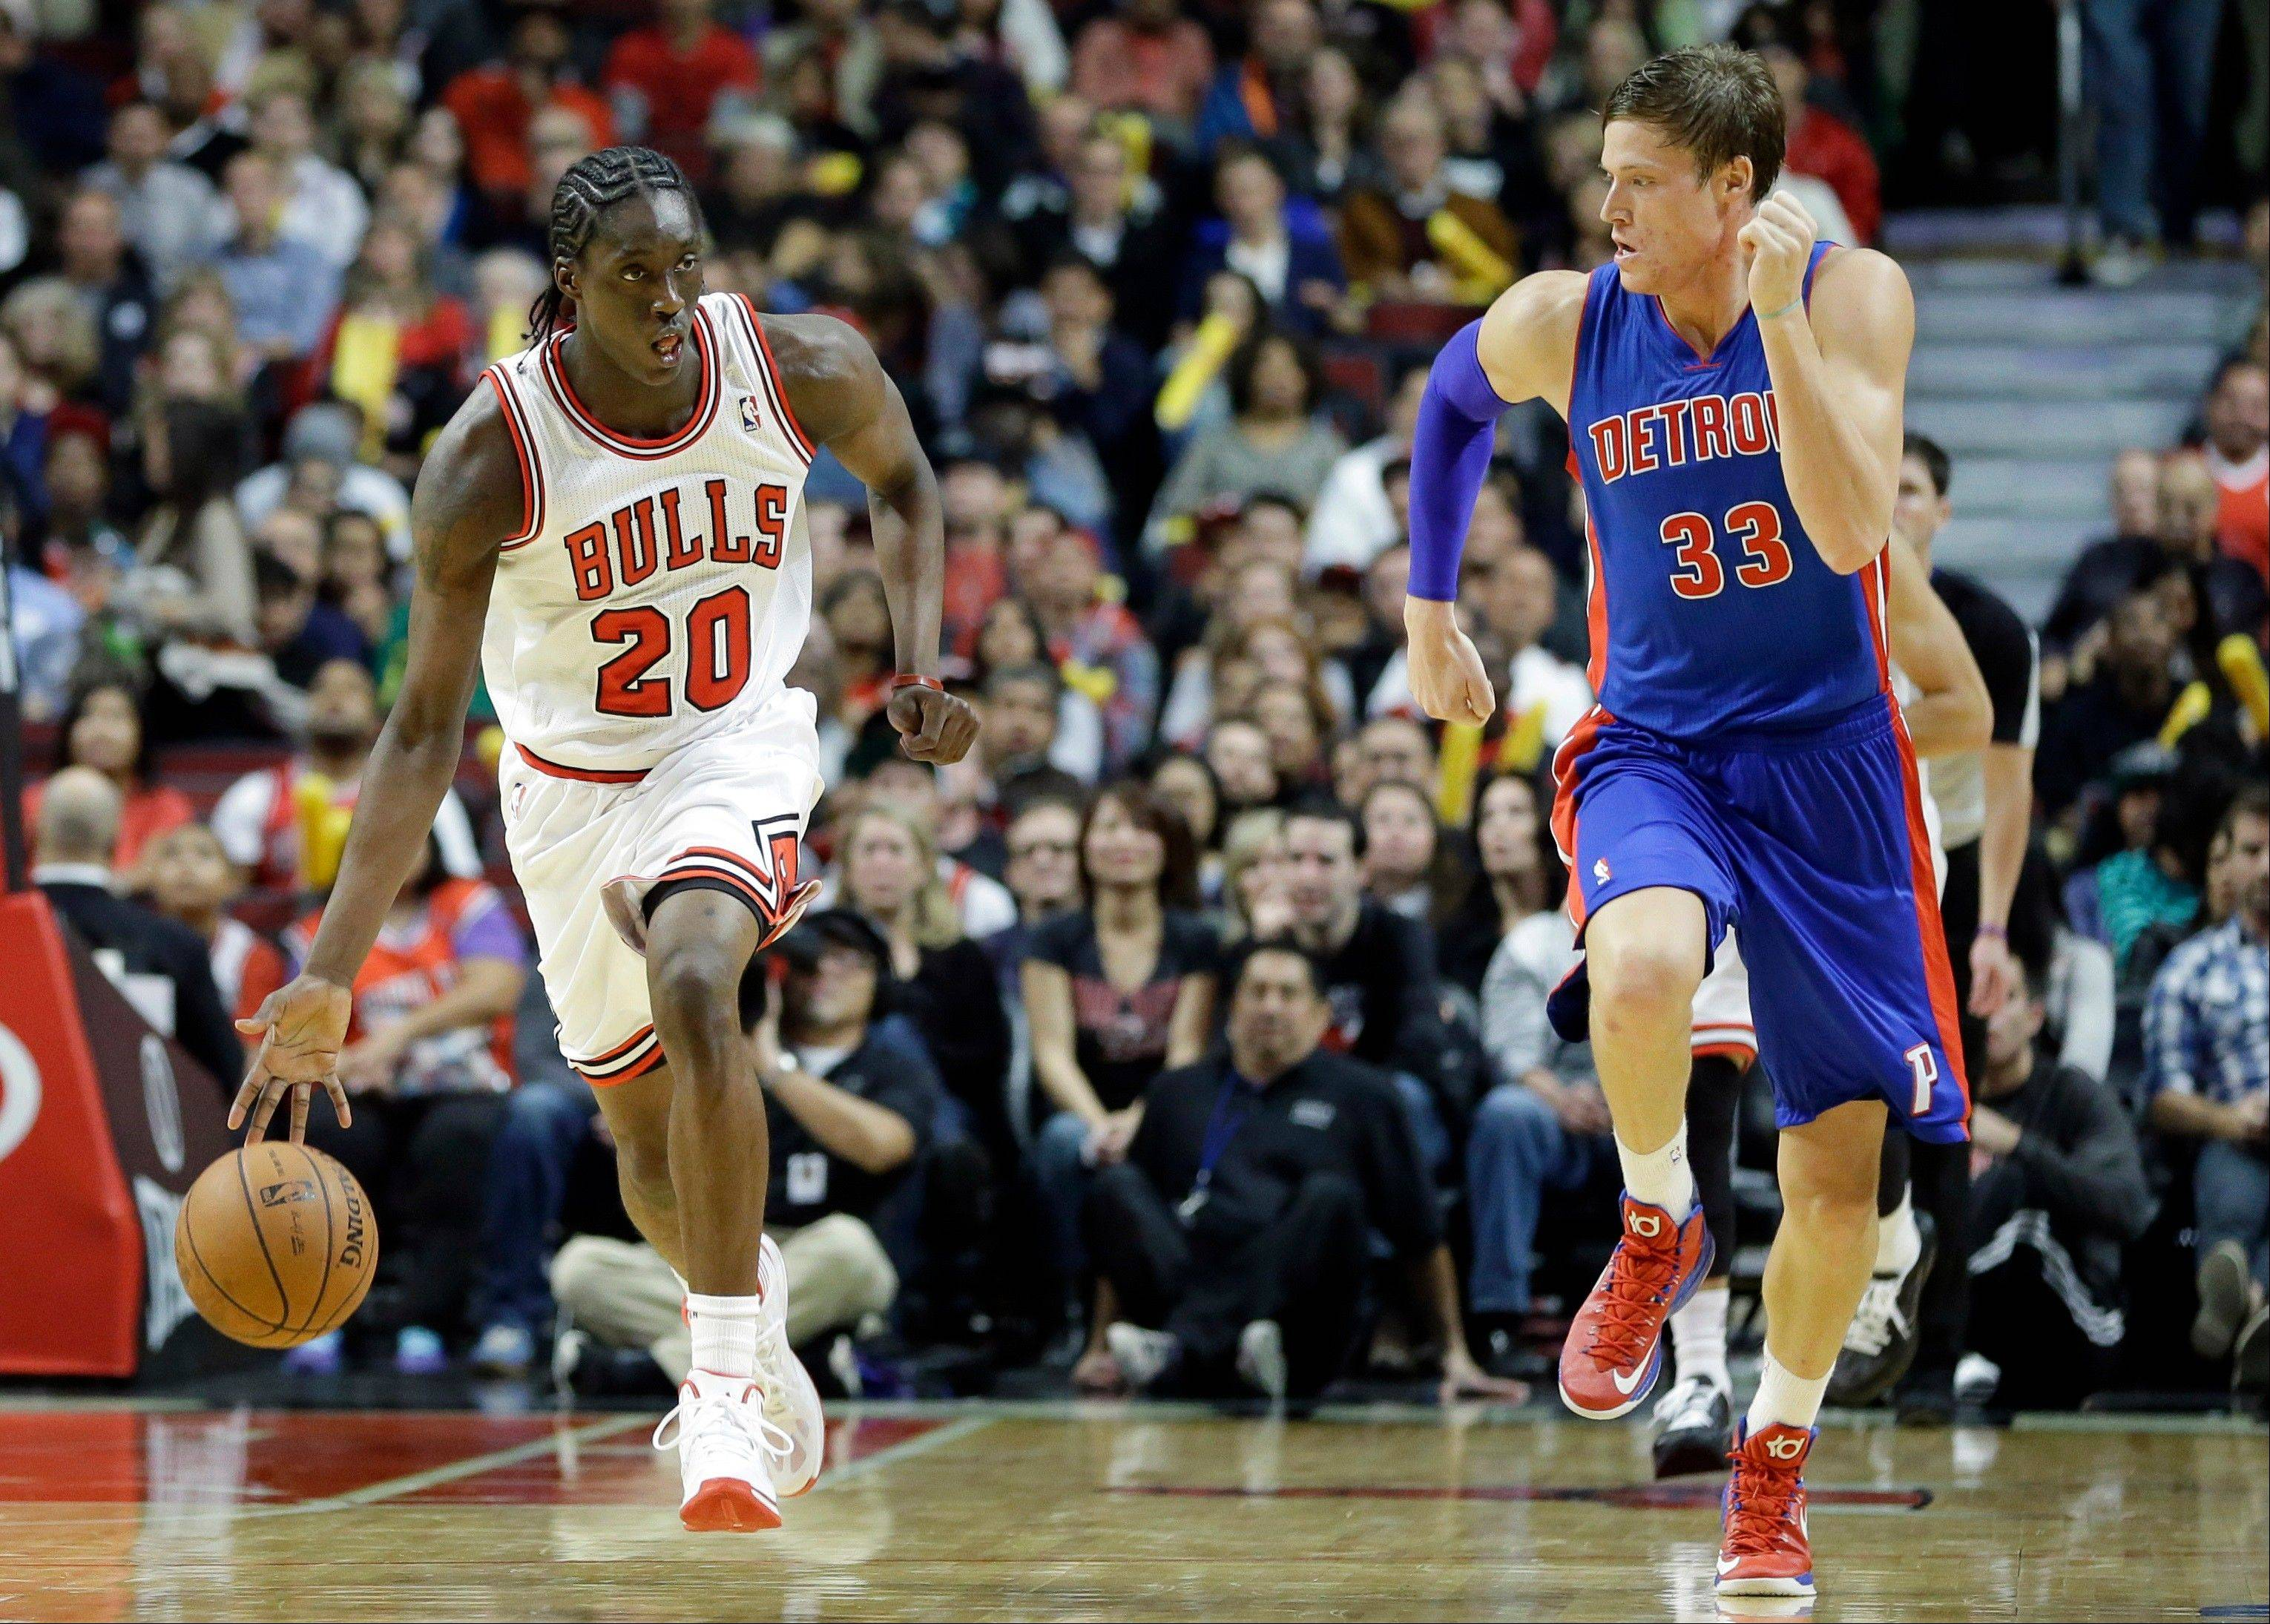 Bulls rookie forward Tony Snell (20) controls the ball against Detroit Pistons forward Jonas Jerebko during the second half of an NBA preseason basketball game in Chicago on Wednesday, Oct. 16, 2013. The Bulls won 96-81.